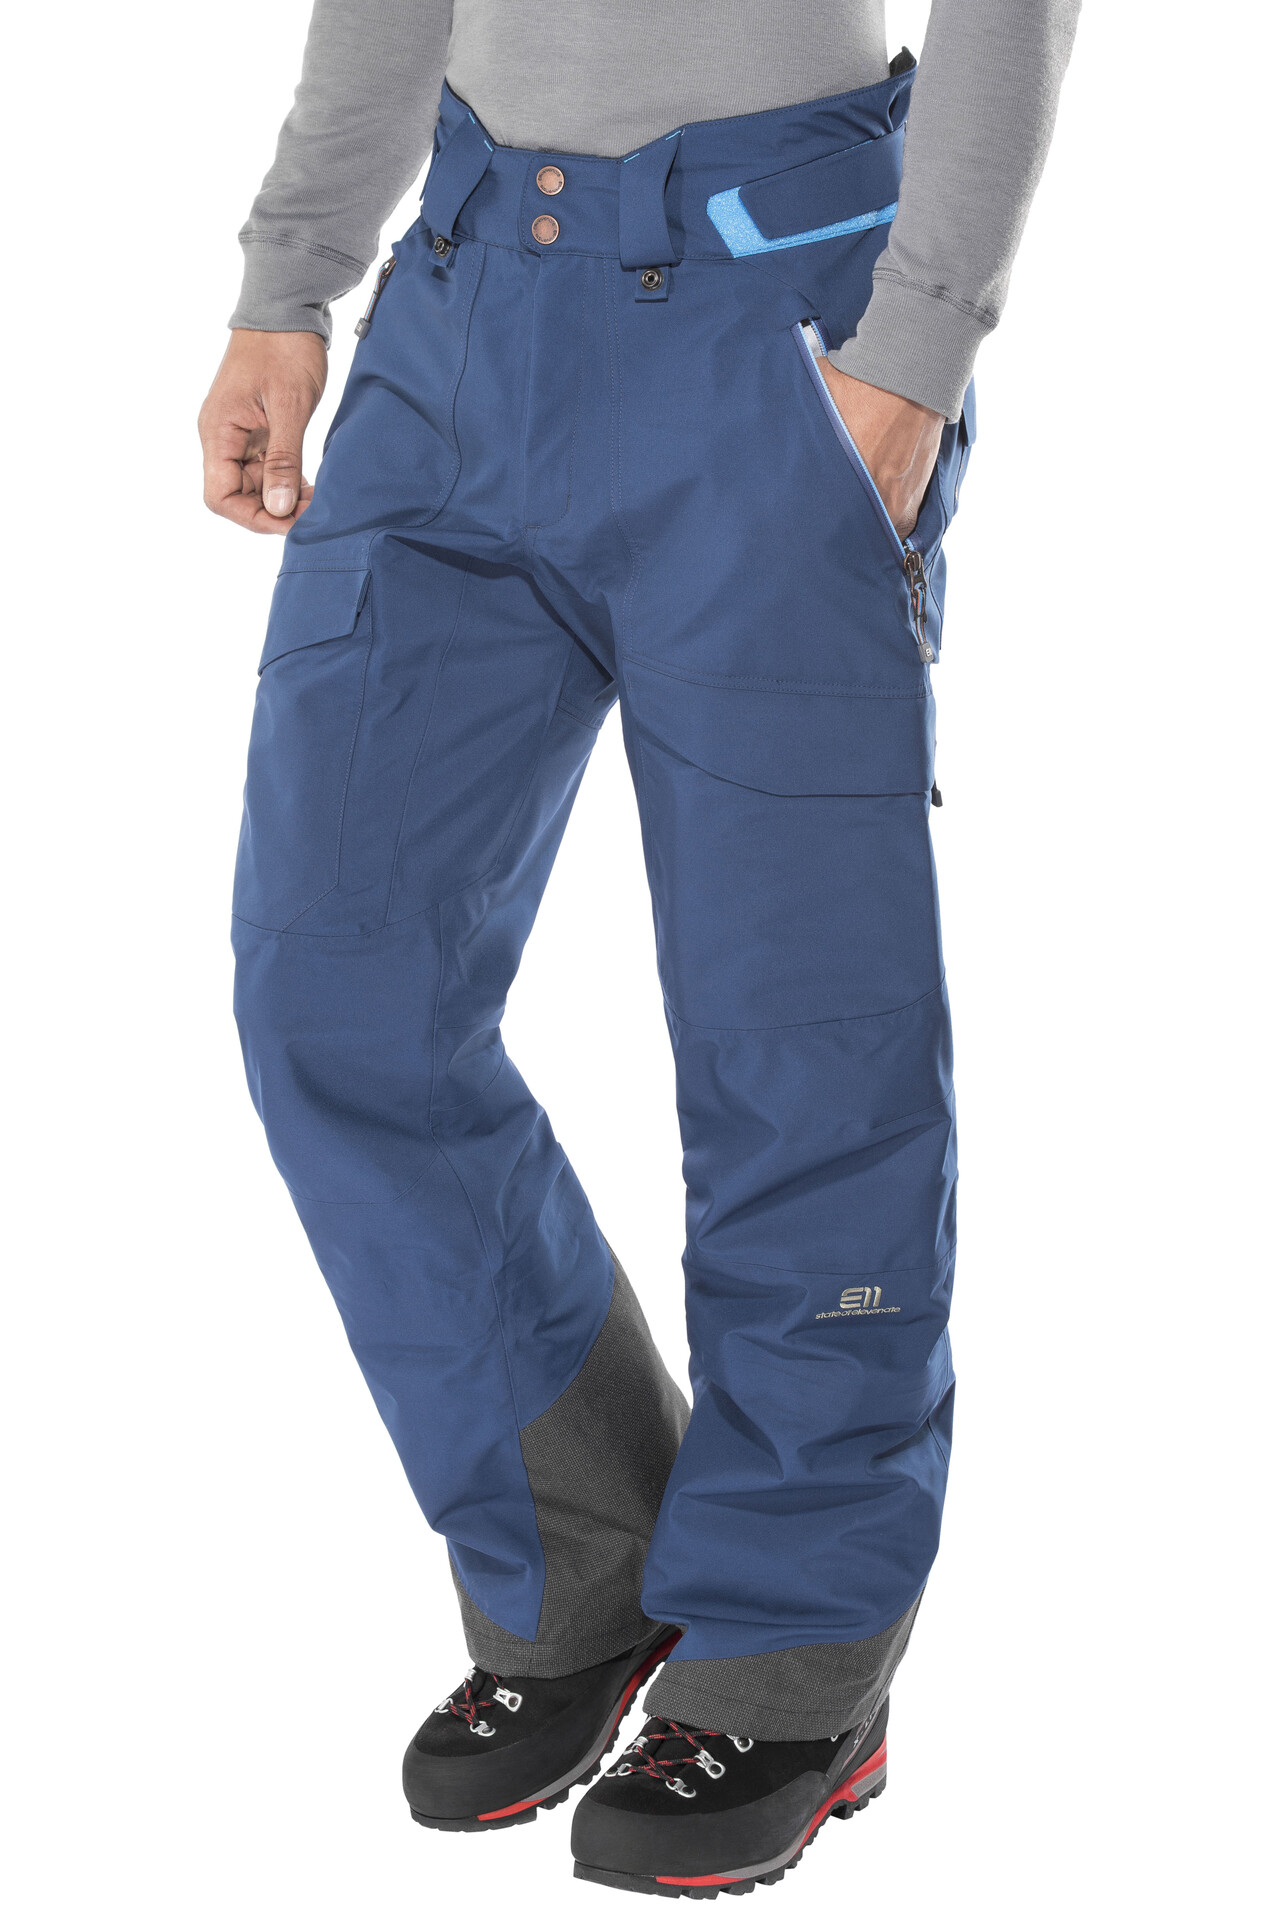 Vallon Sur Bleunoir Long Pantalon Elevenate Homme TAnFgwq